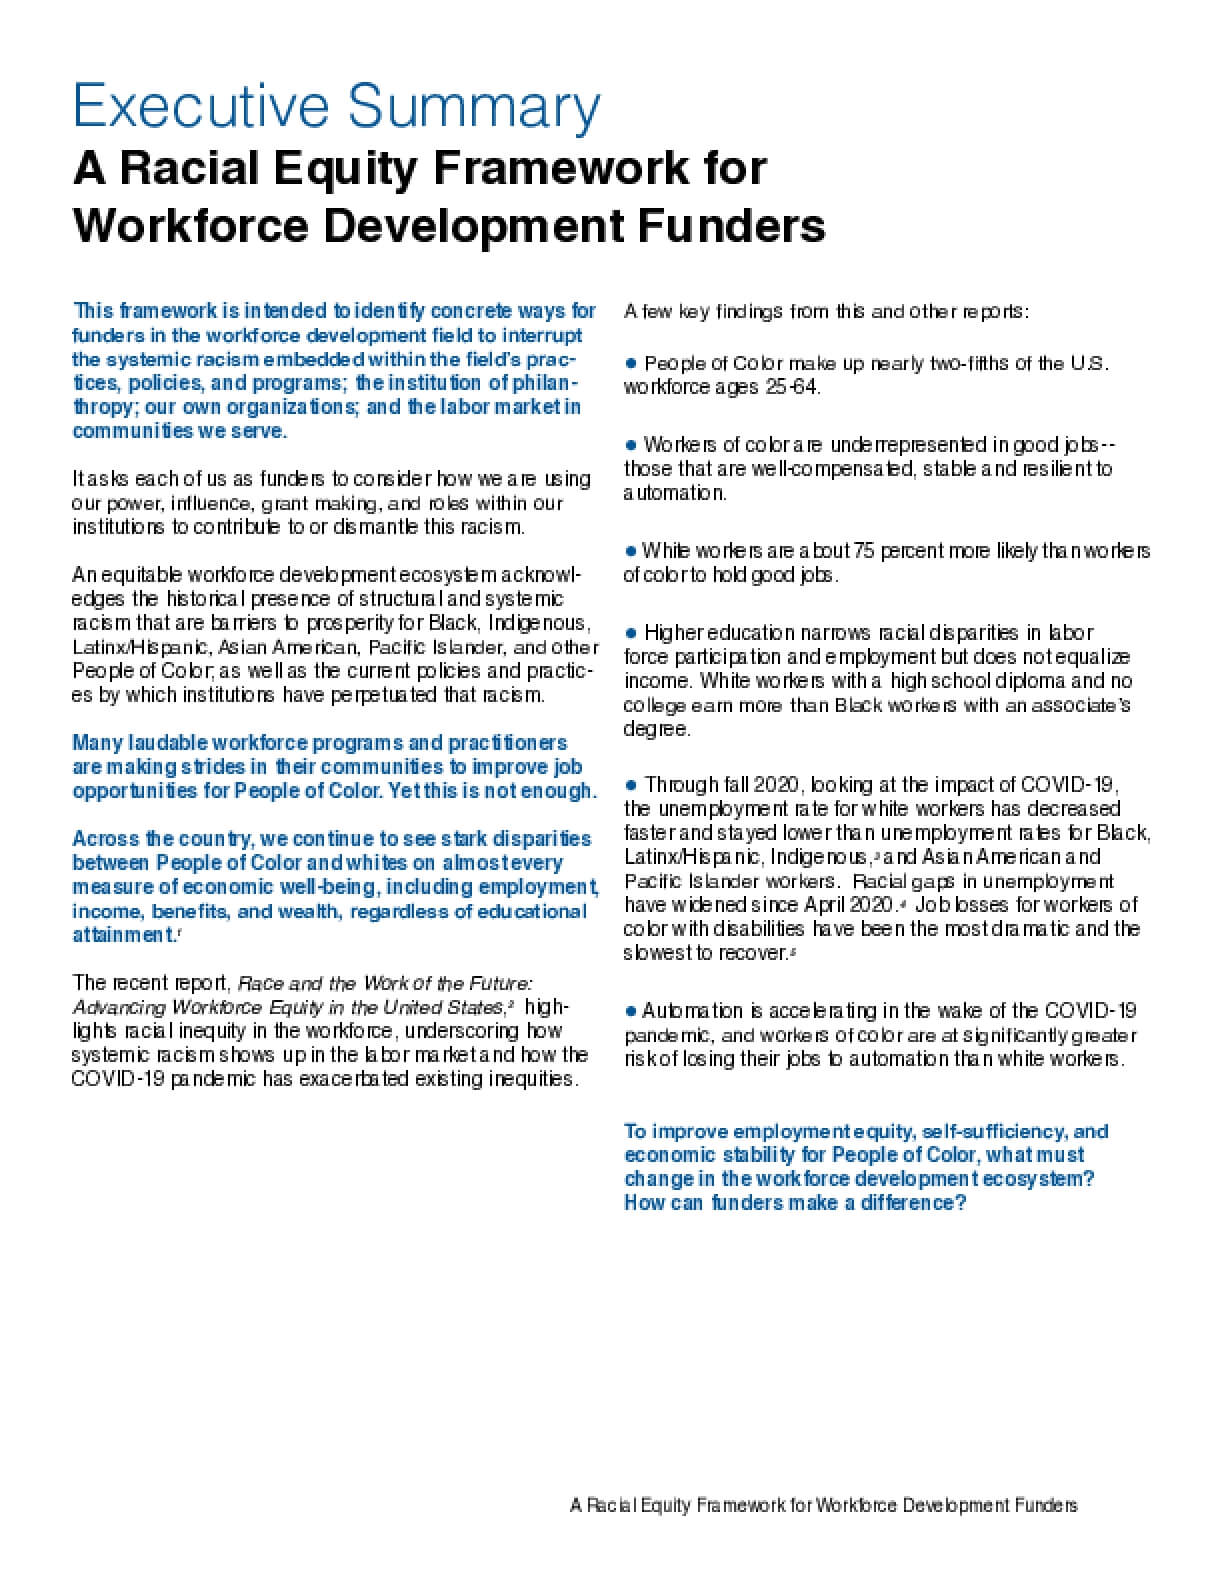 A Racial Equity Framework for Workforce Development Funders (Executive Summary)